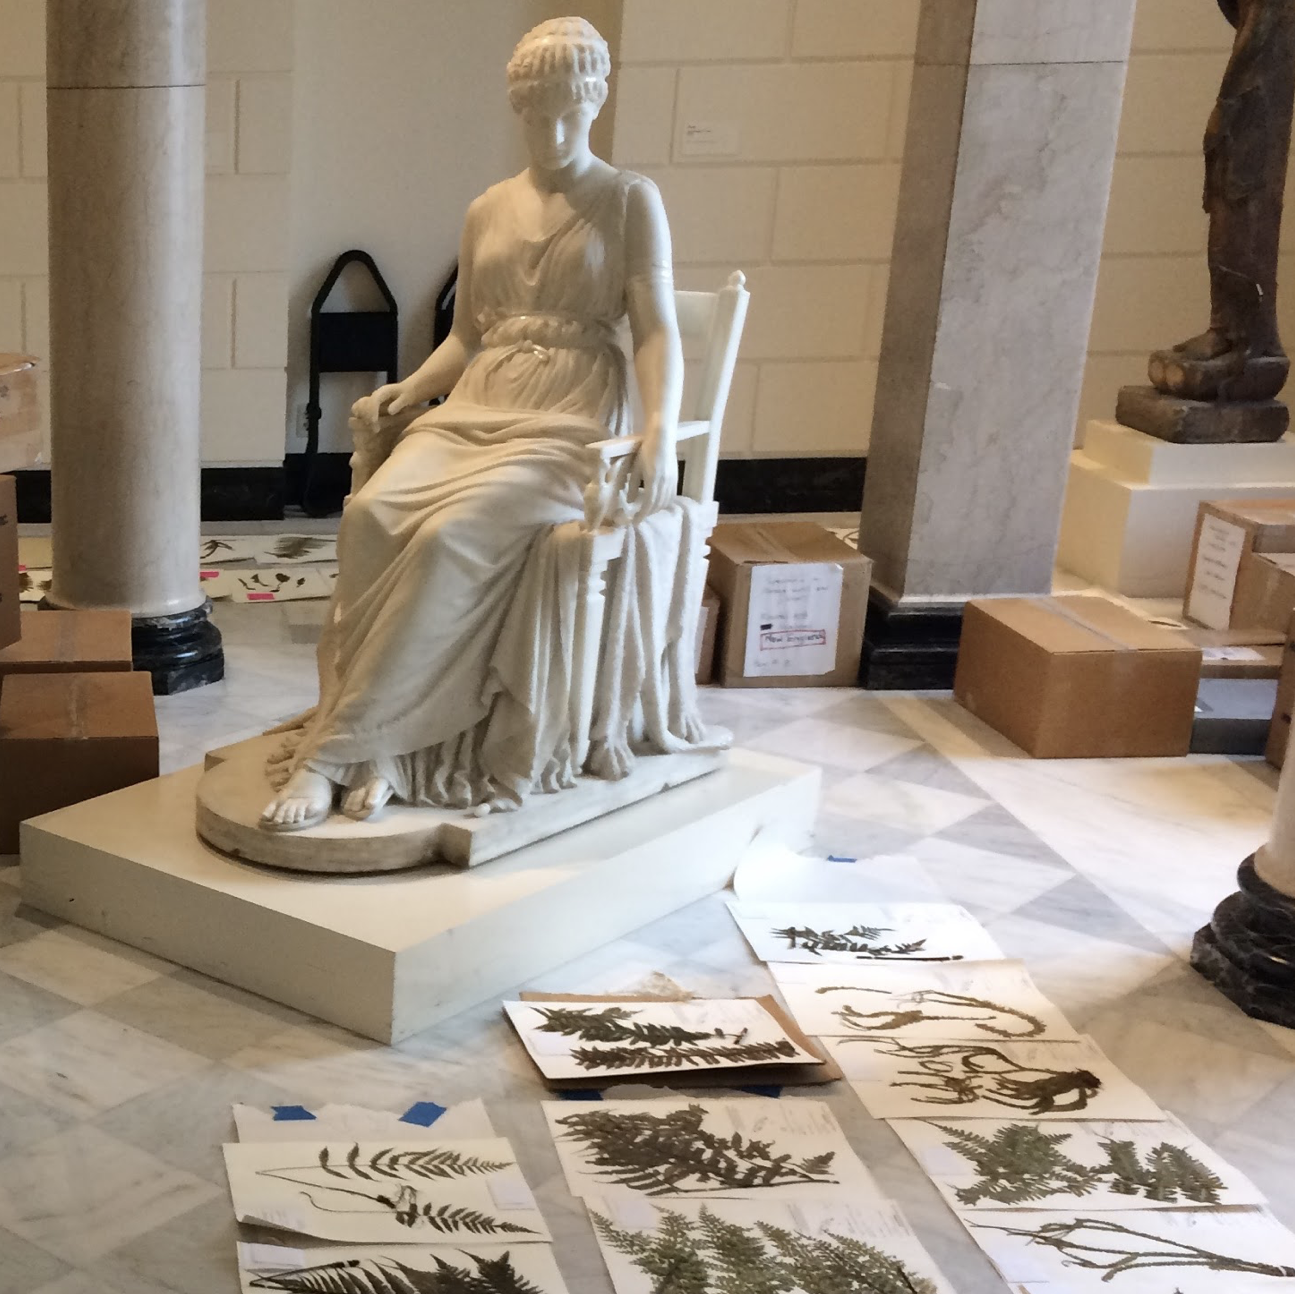 plant specimens drying on the floor next to a marble statue of a seated woman